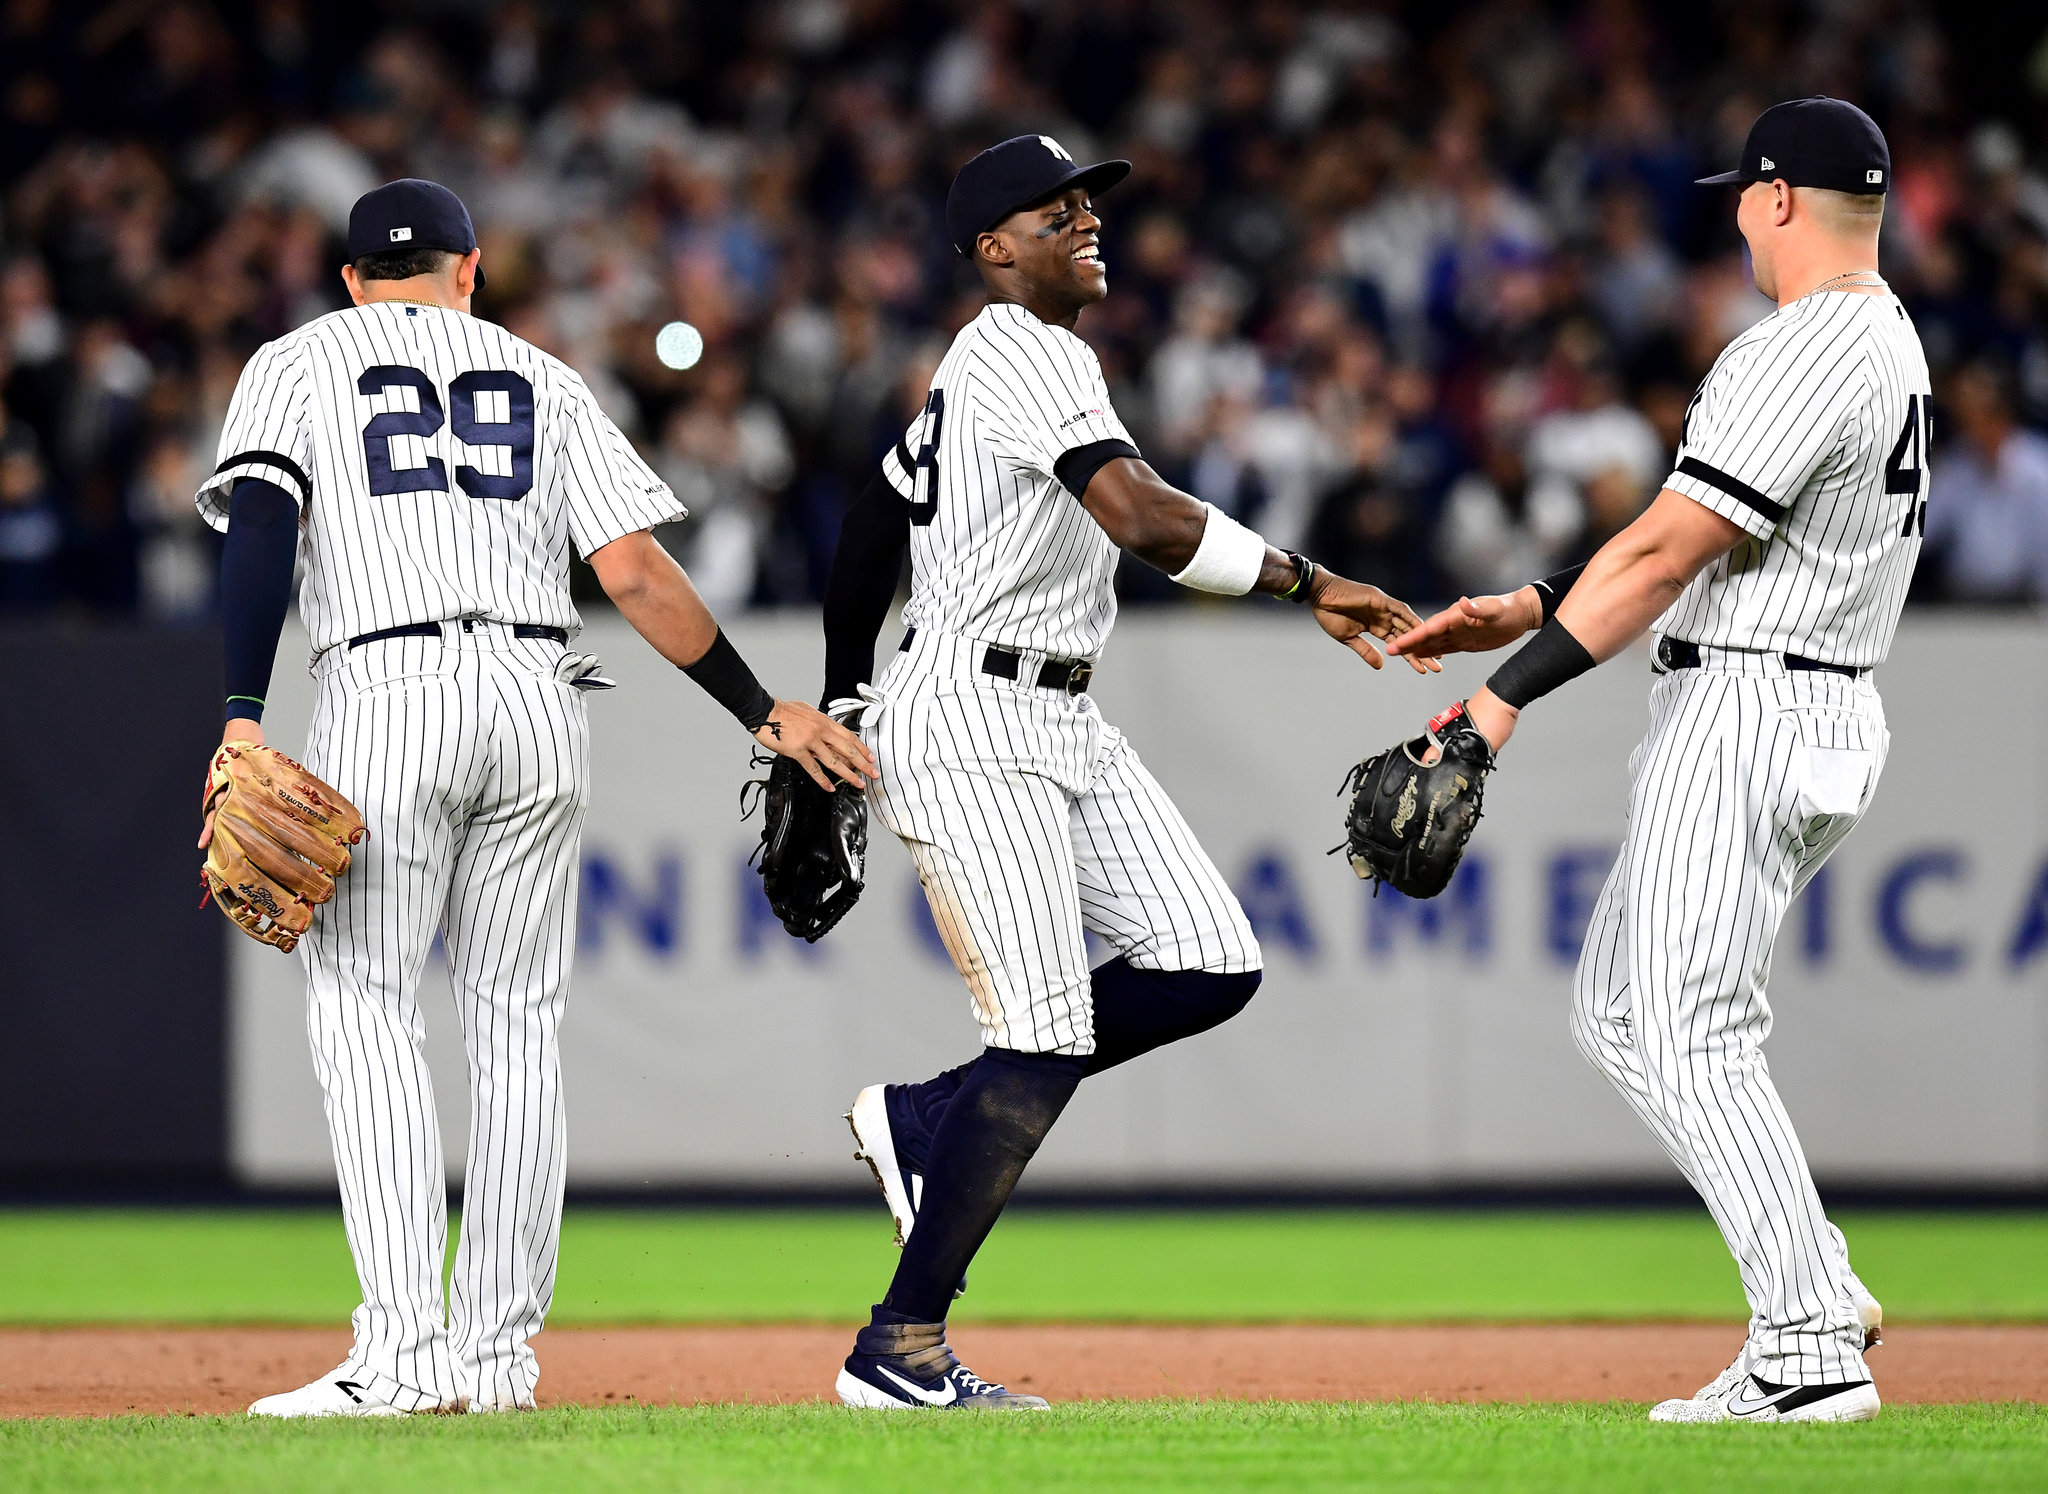 The Answers To Common Questions About The Yankees